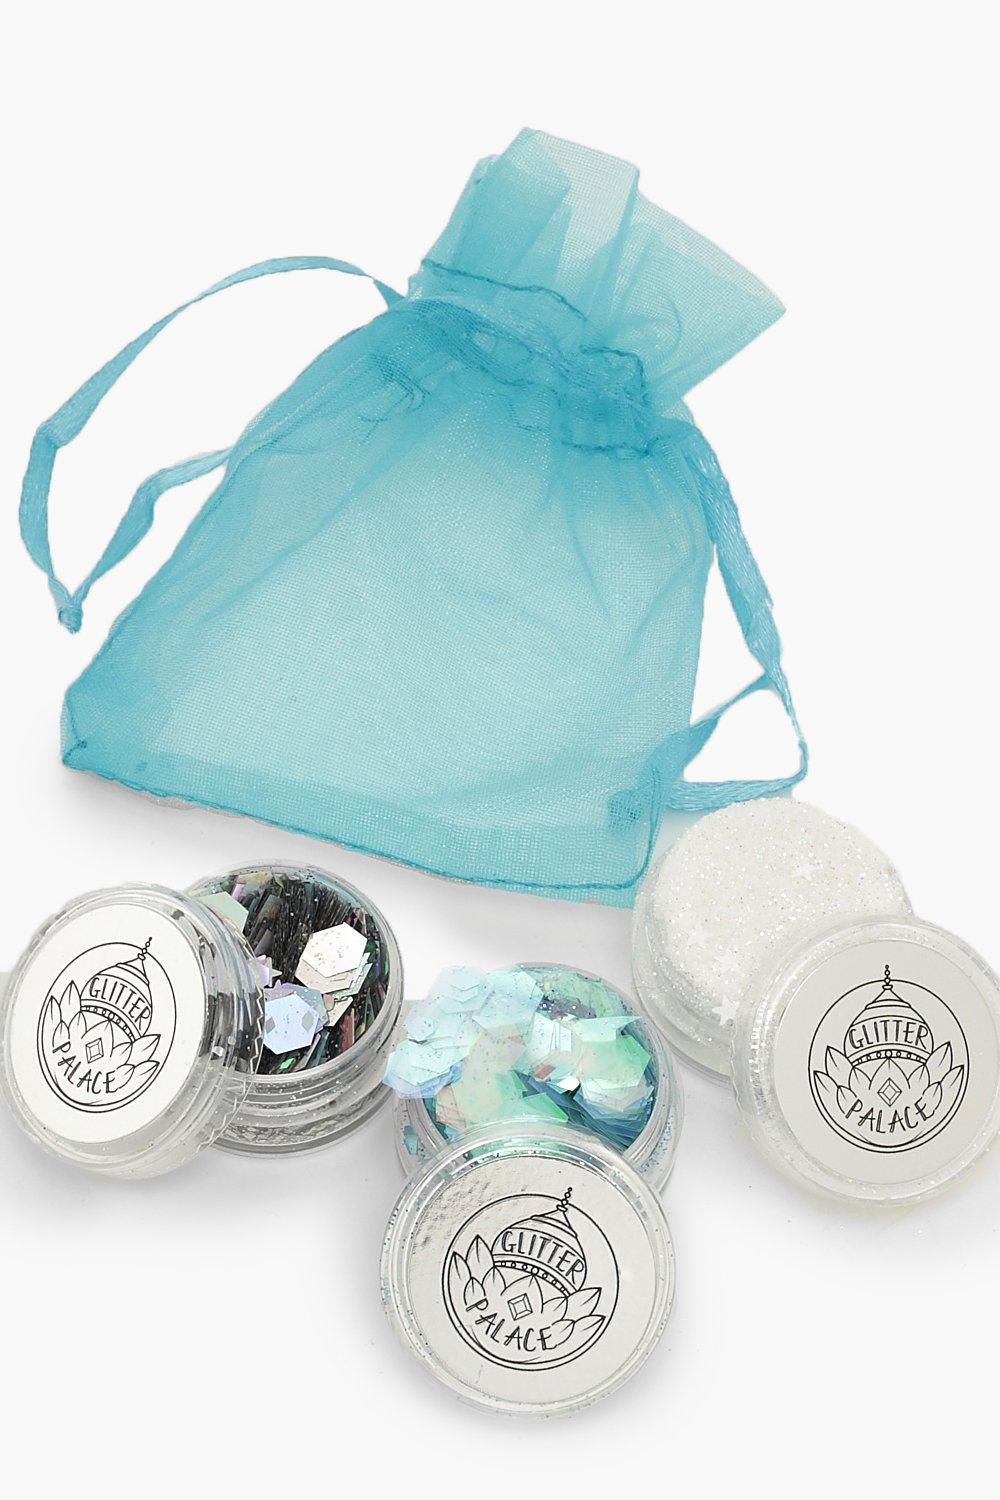 3pk Glitter Set- Ice Queen